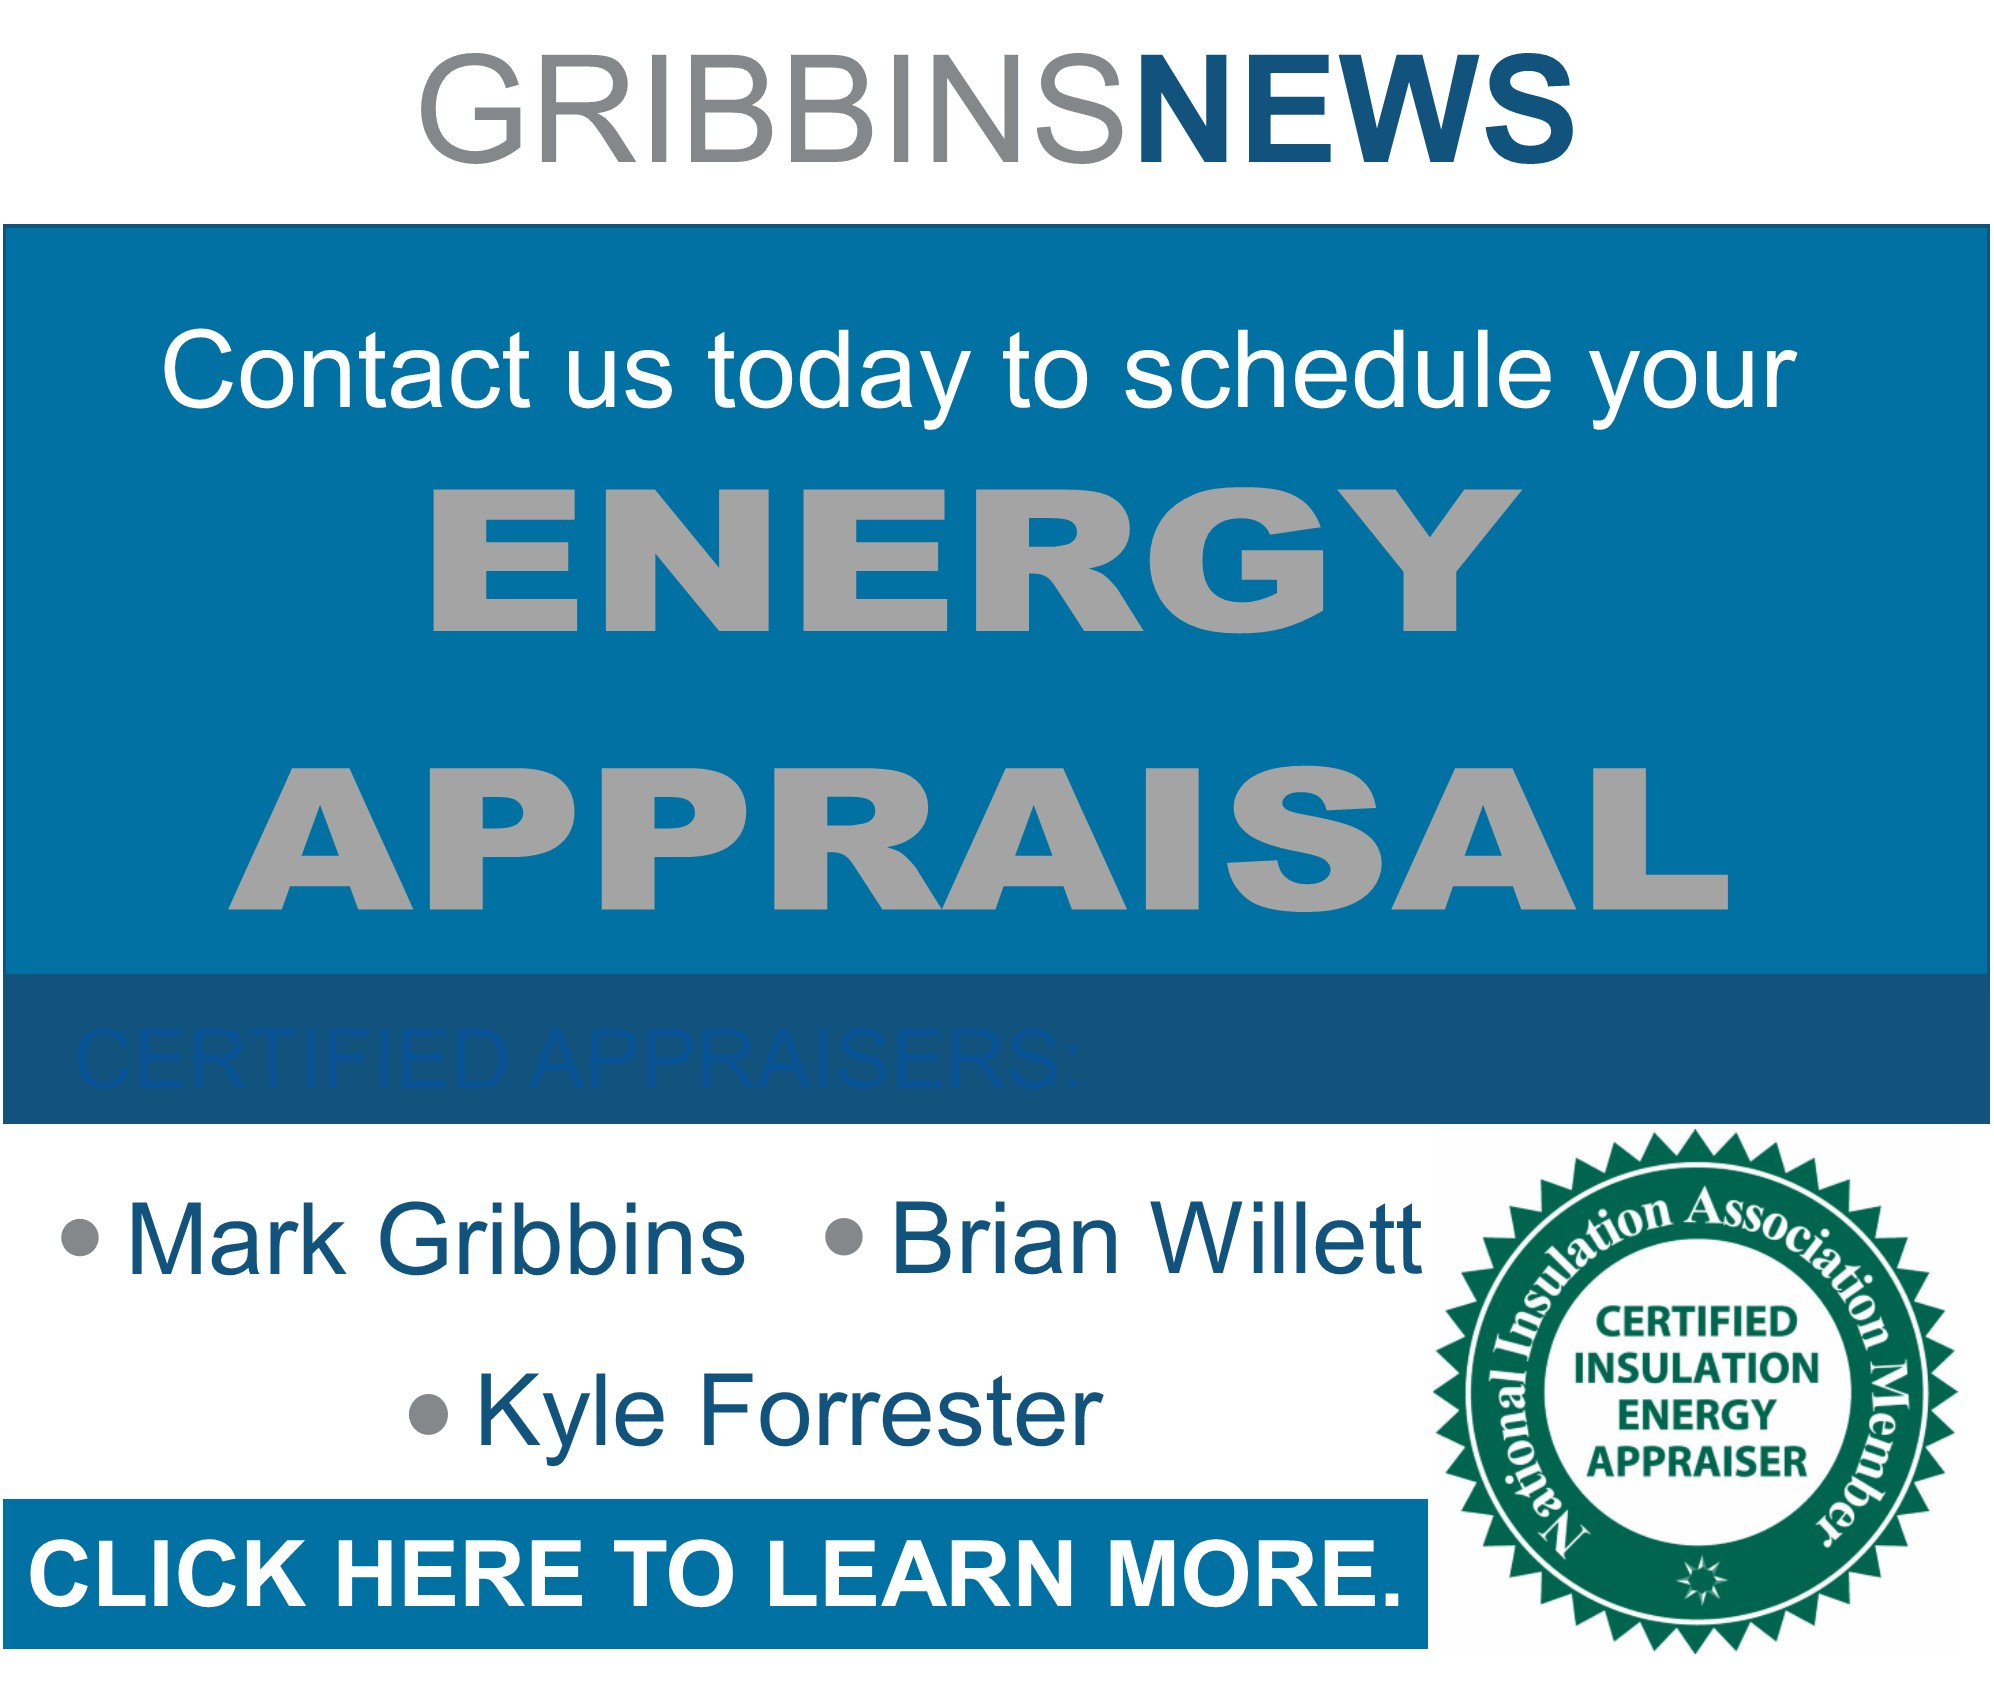 Certified Insulation Energy Appraisals